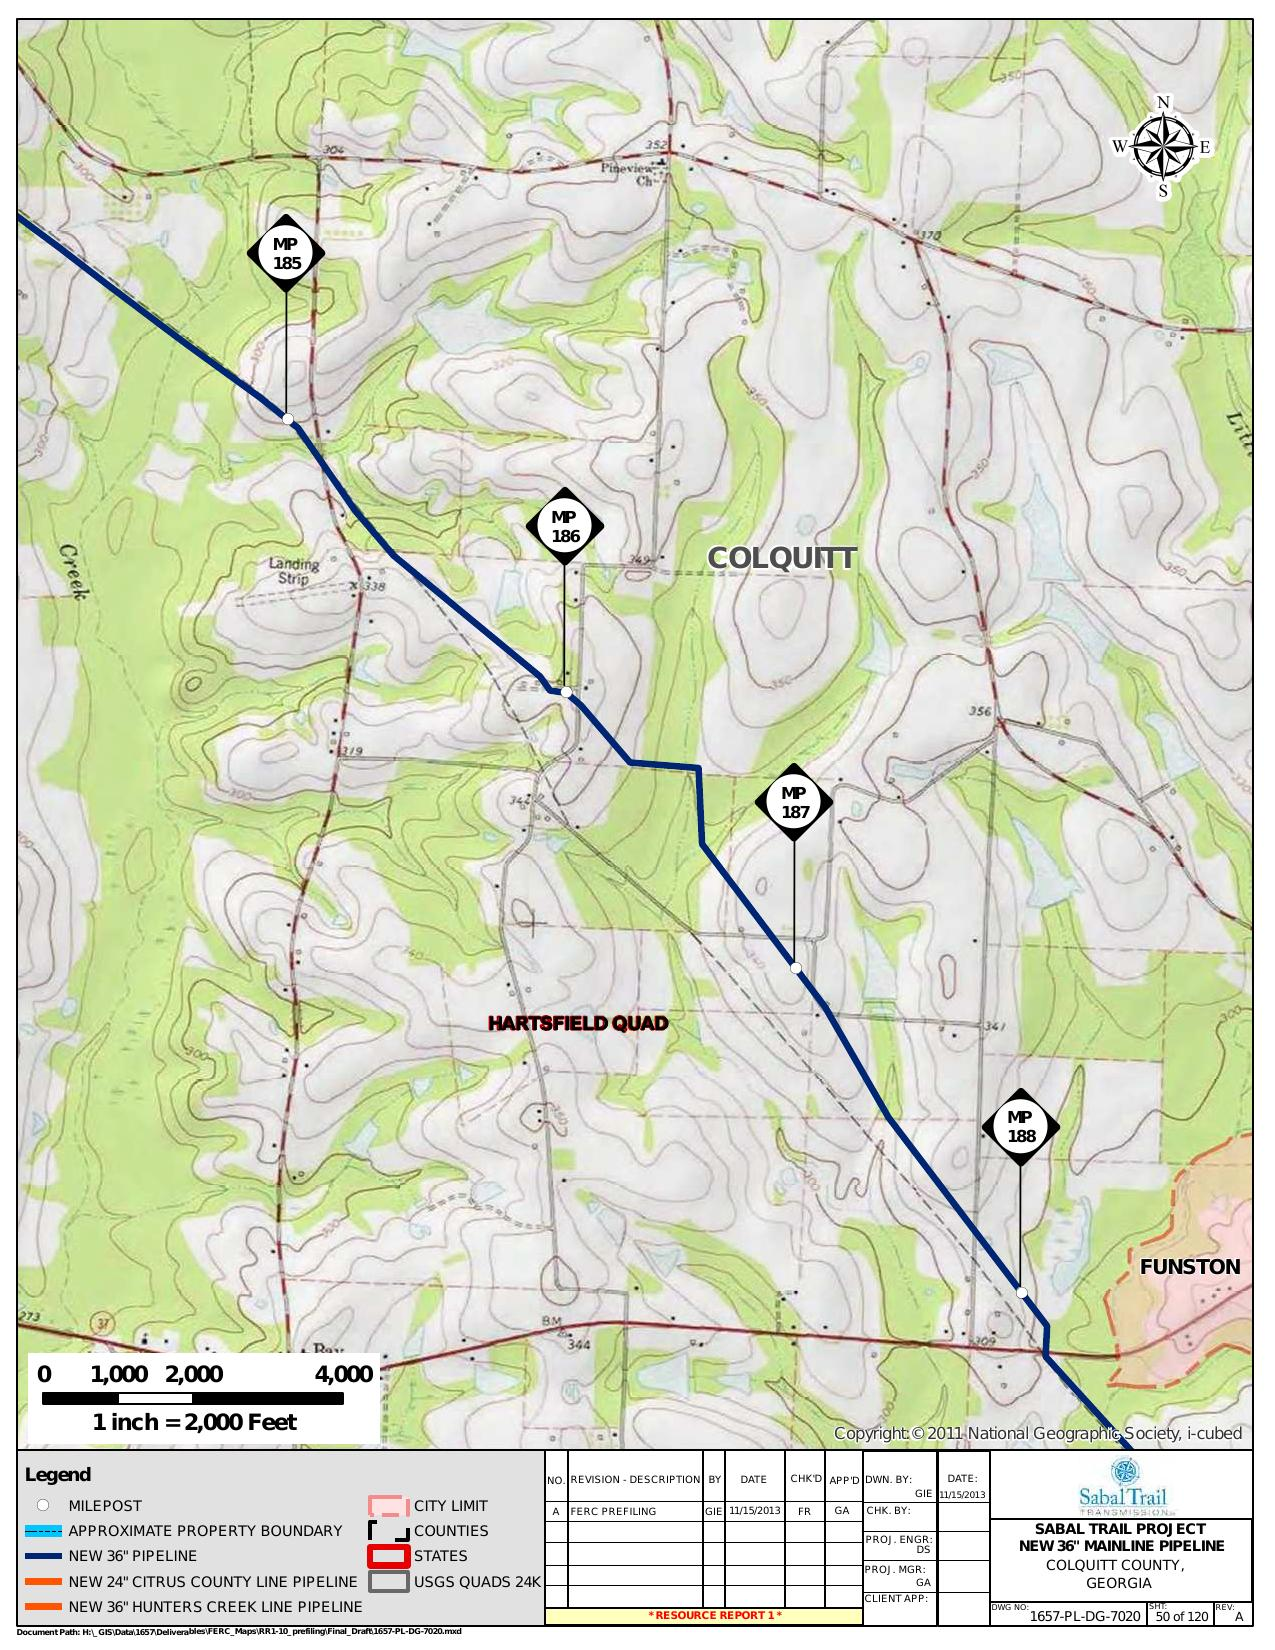 Quad Maps For Entire Proposed Pipeline Path By Sabal Trail - Georgia map project